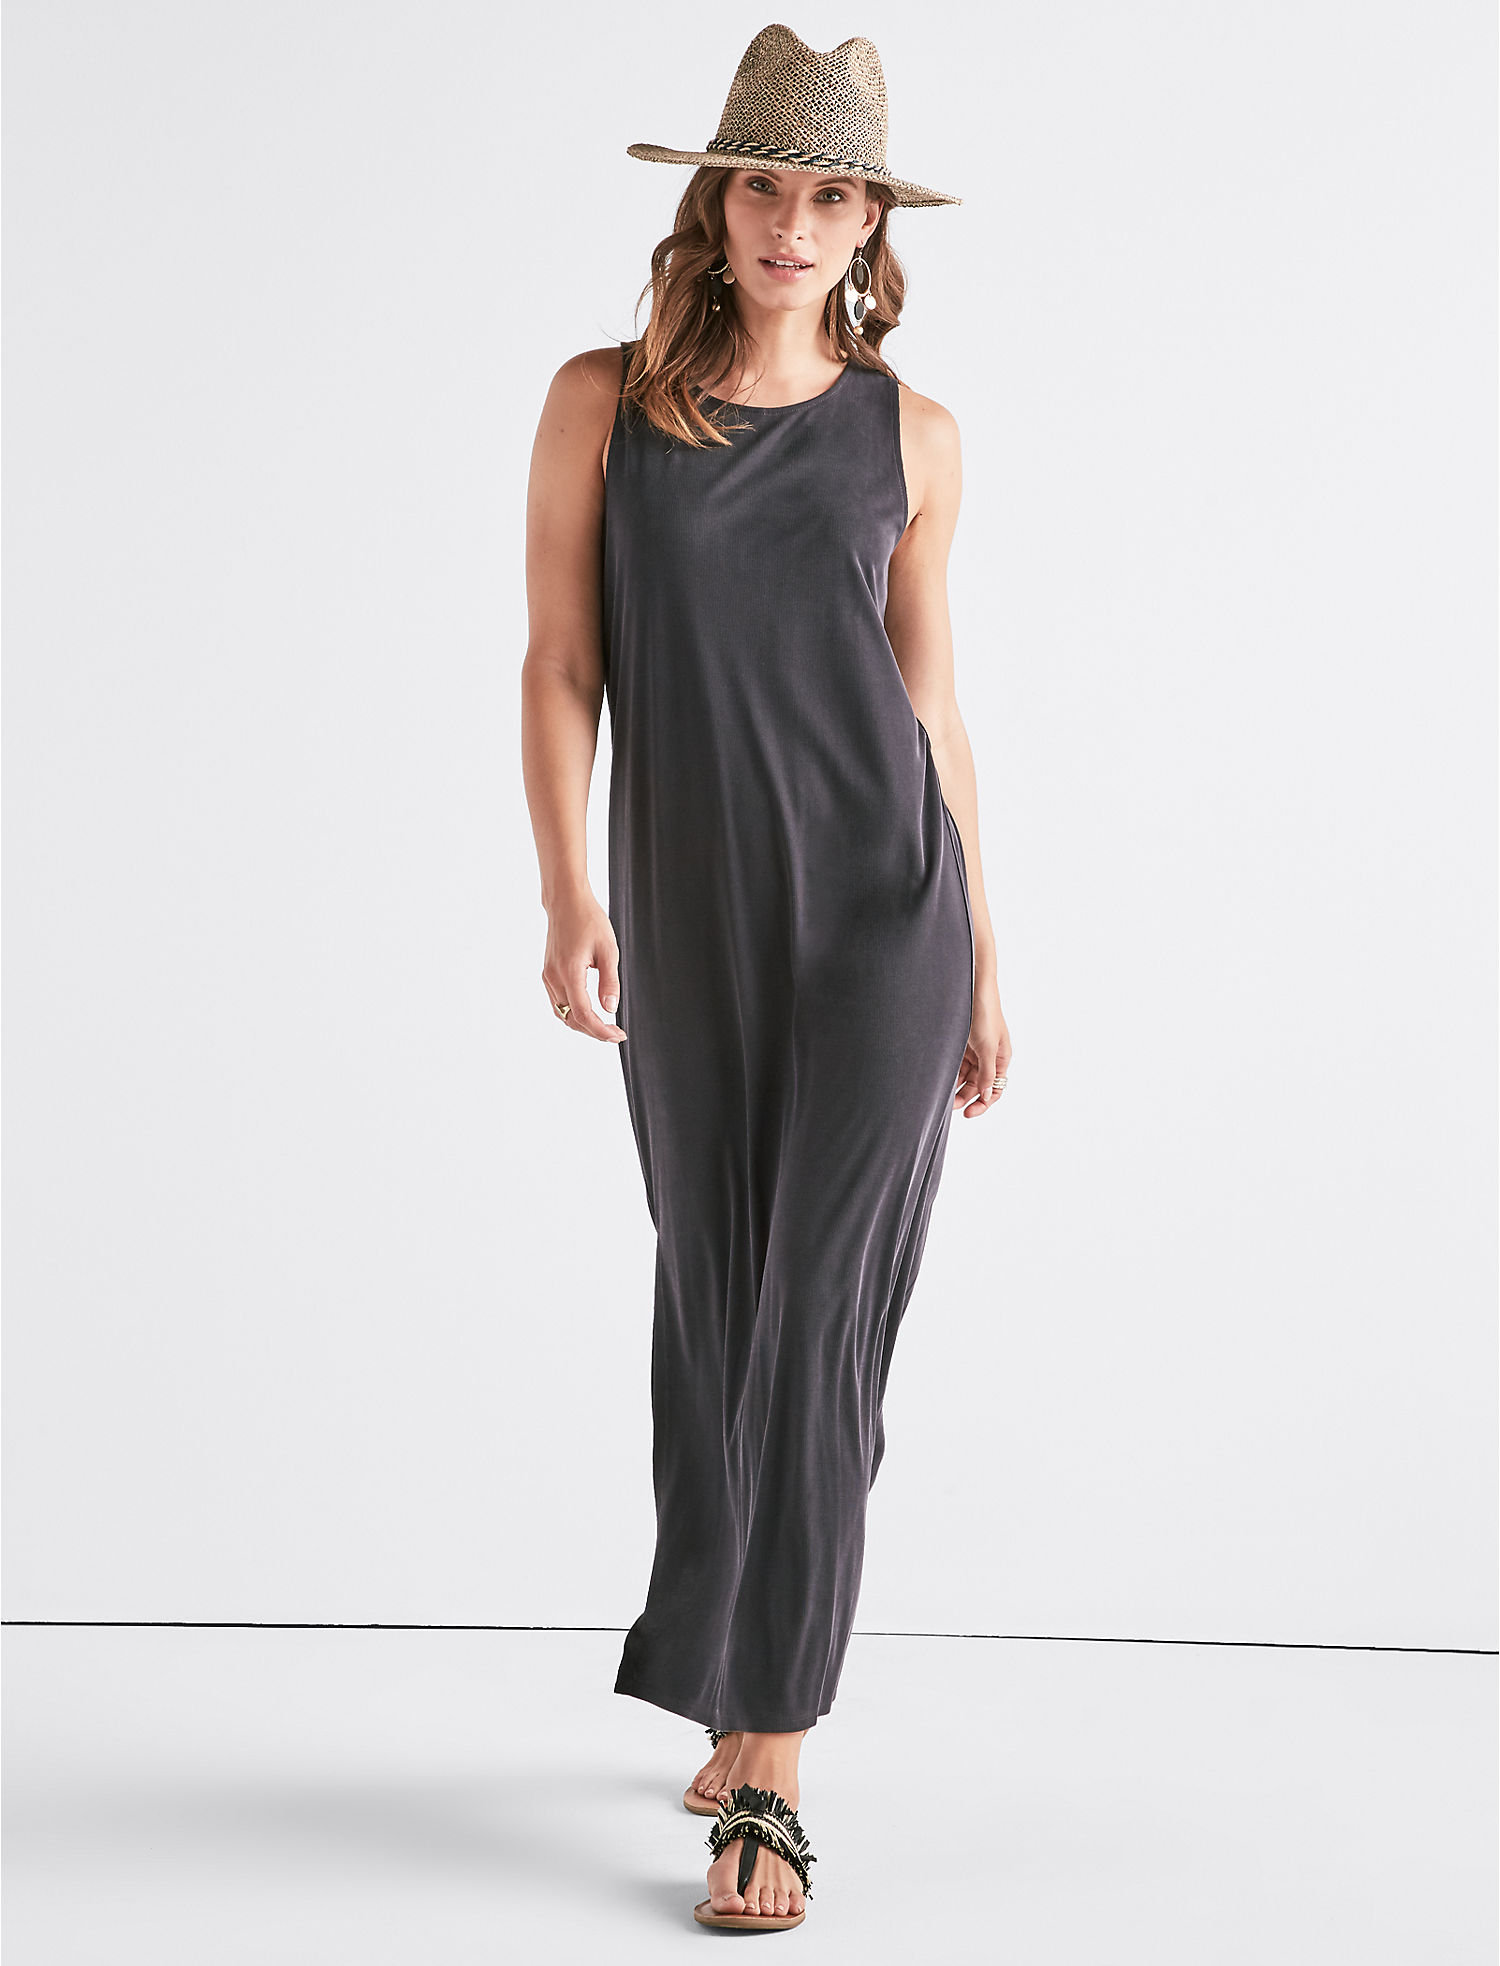 Ribbed Sandwash Dress Lucky Brand Cheap Outlet Countdown Package Sale Online Cheapest Price Outlet Online BLkAzxy6BT